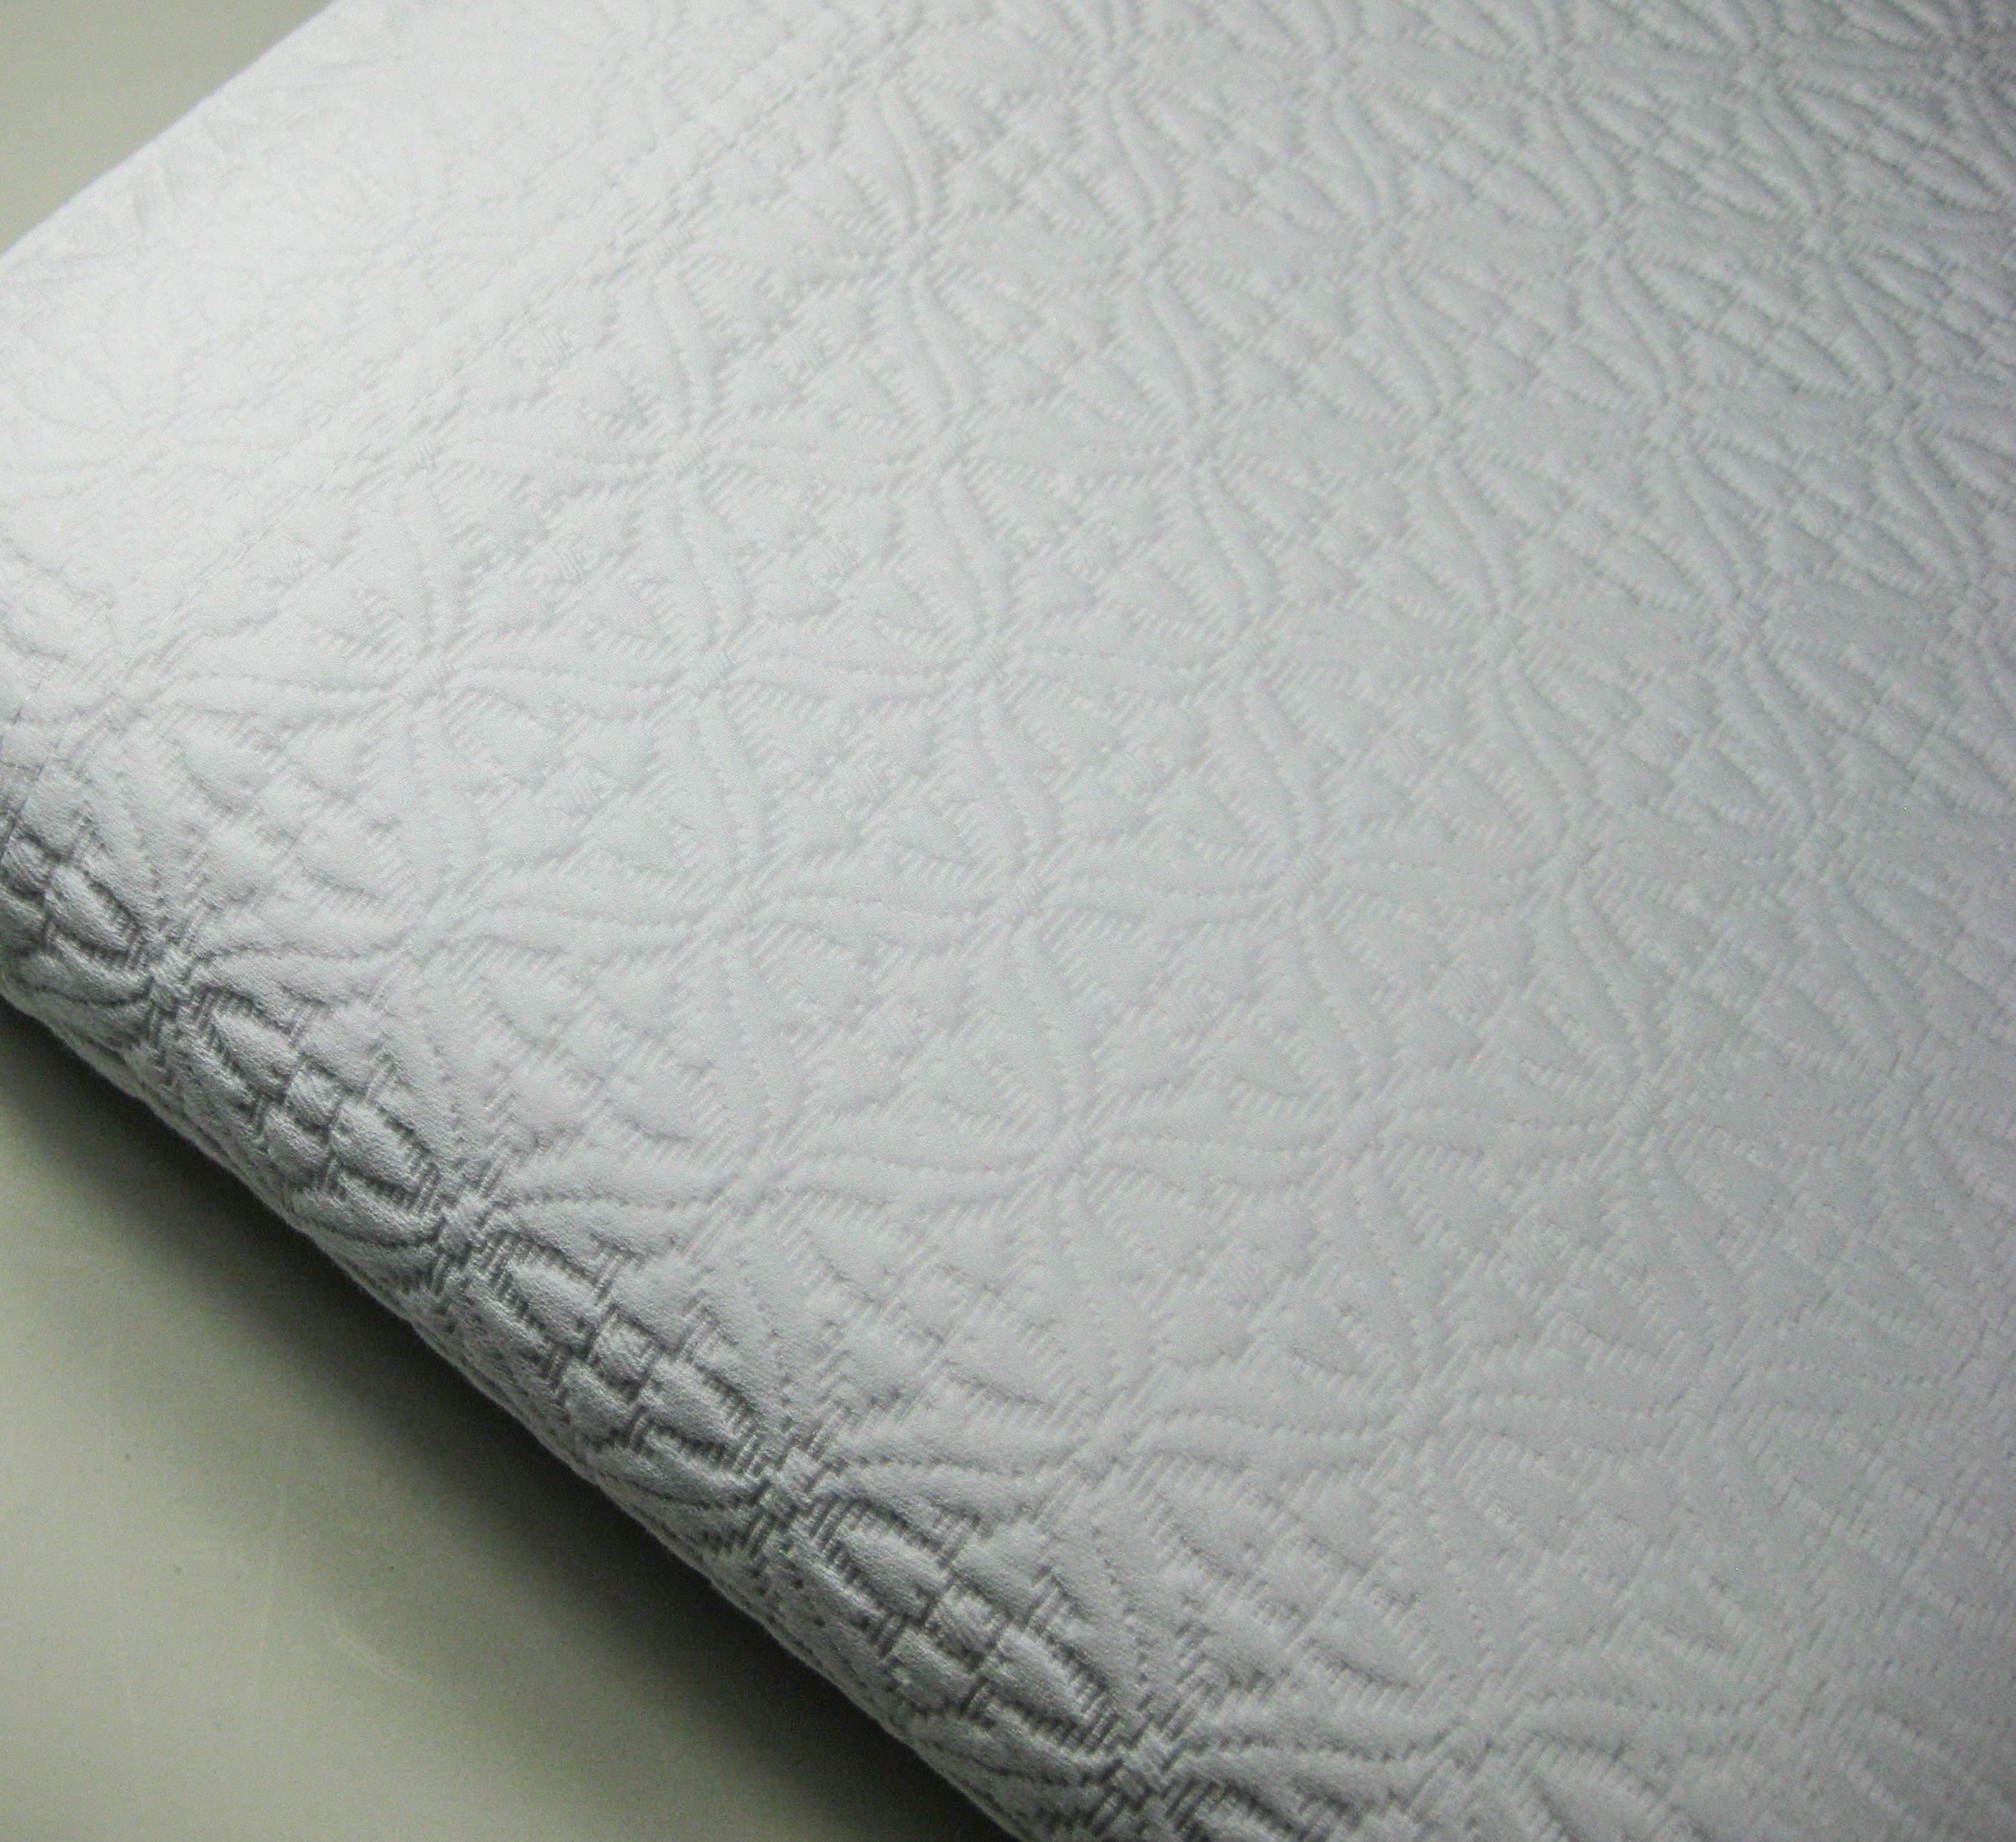 Amazon.com   White Queen Matelasse Coverlet Bed Cover Woven 100% Cotton  Made In